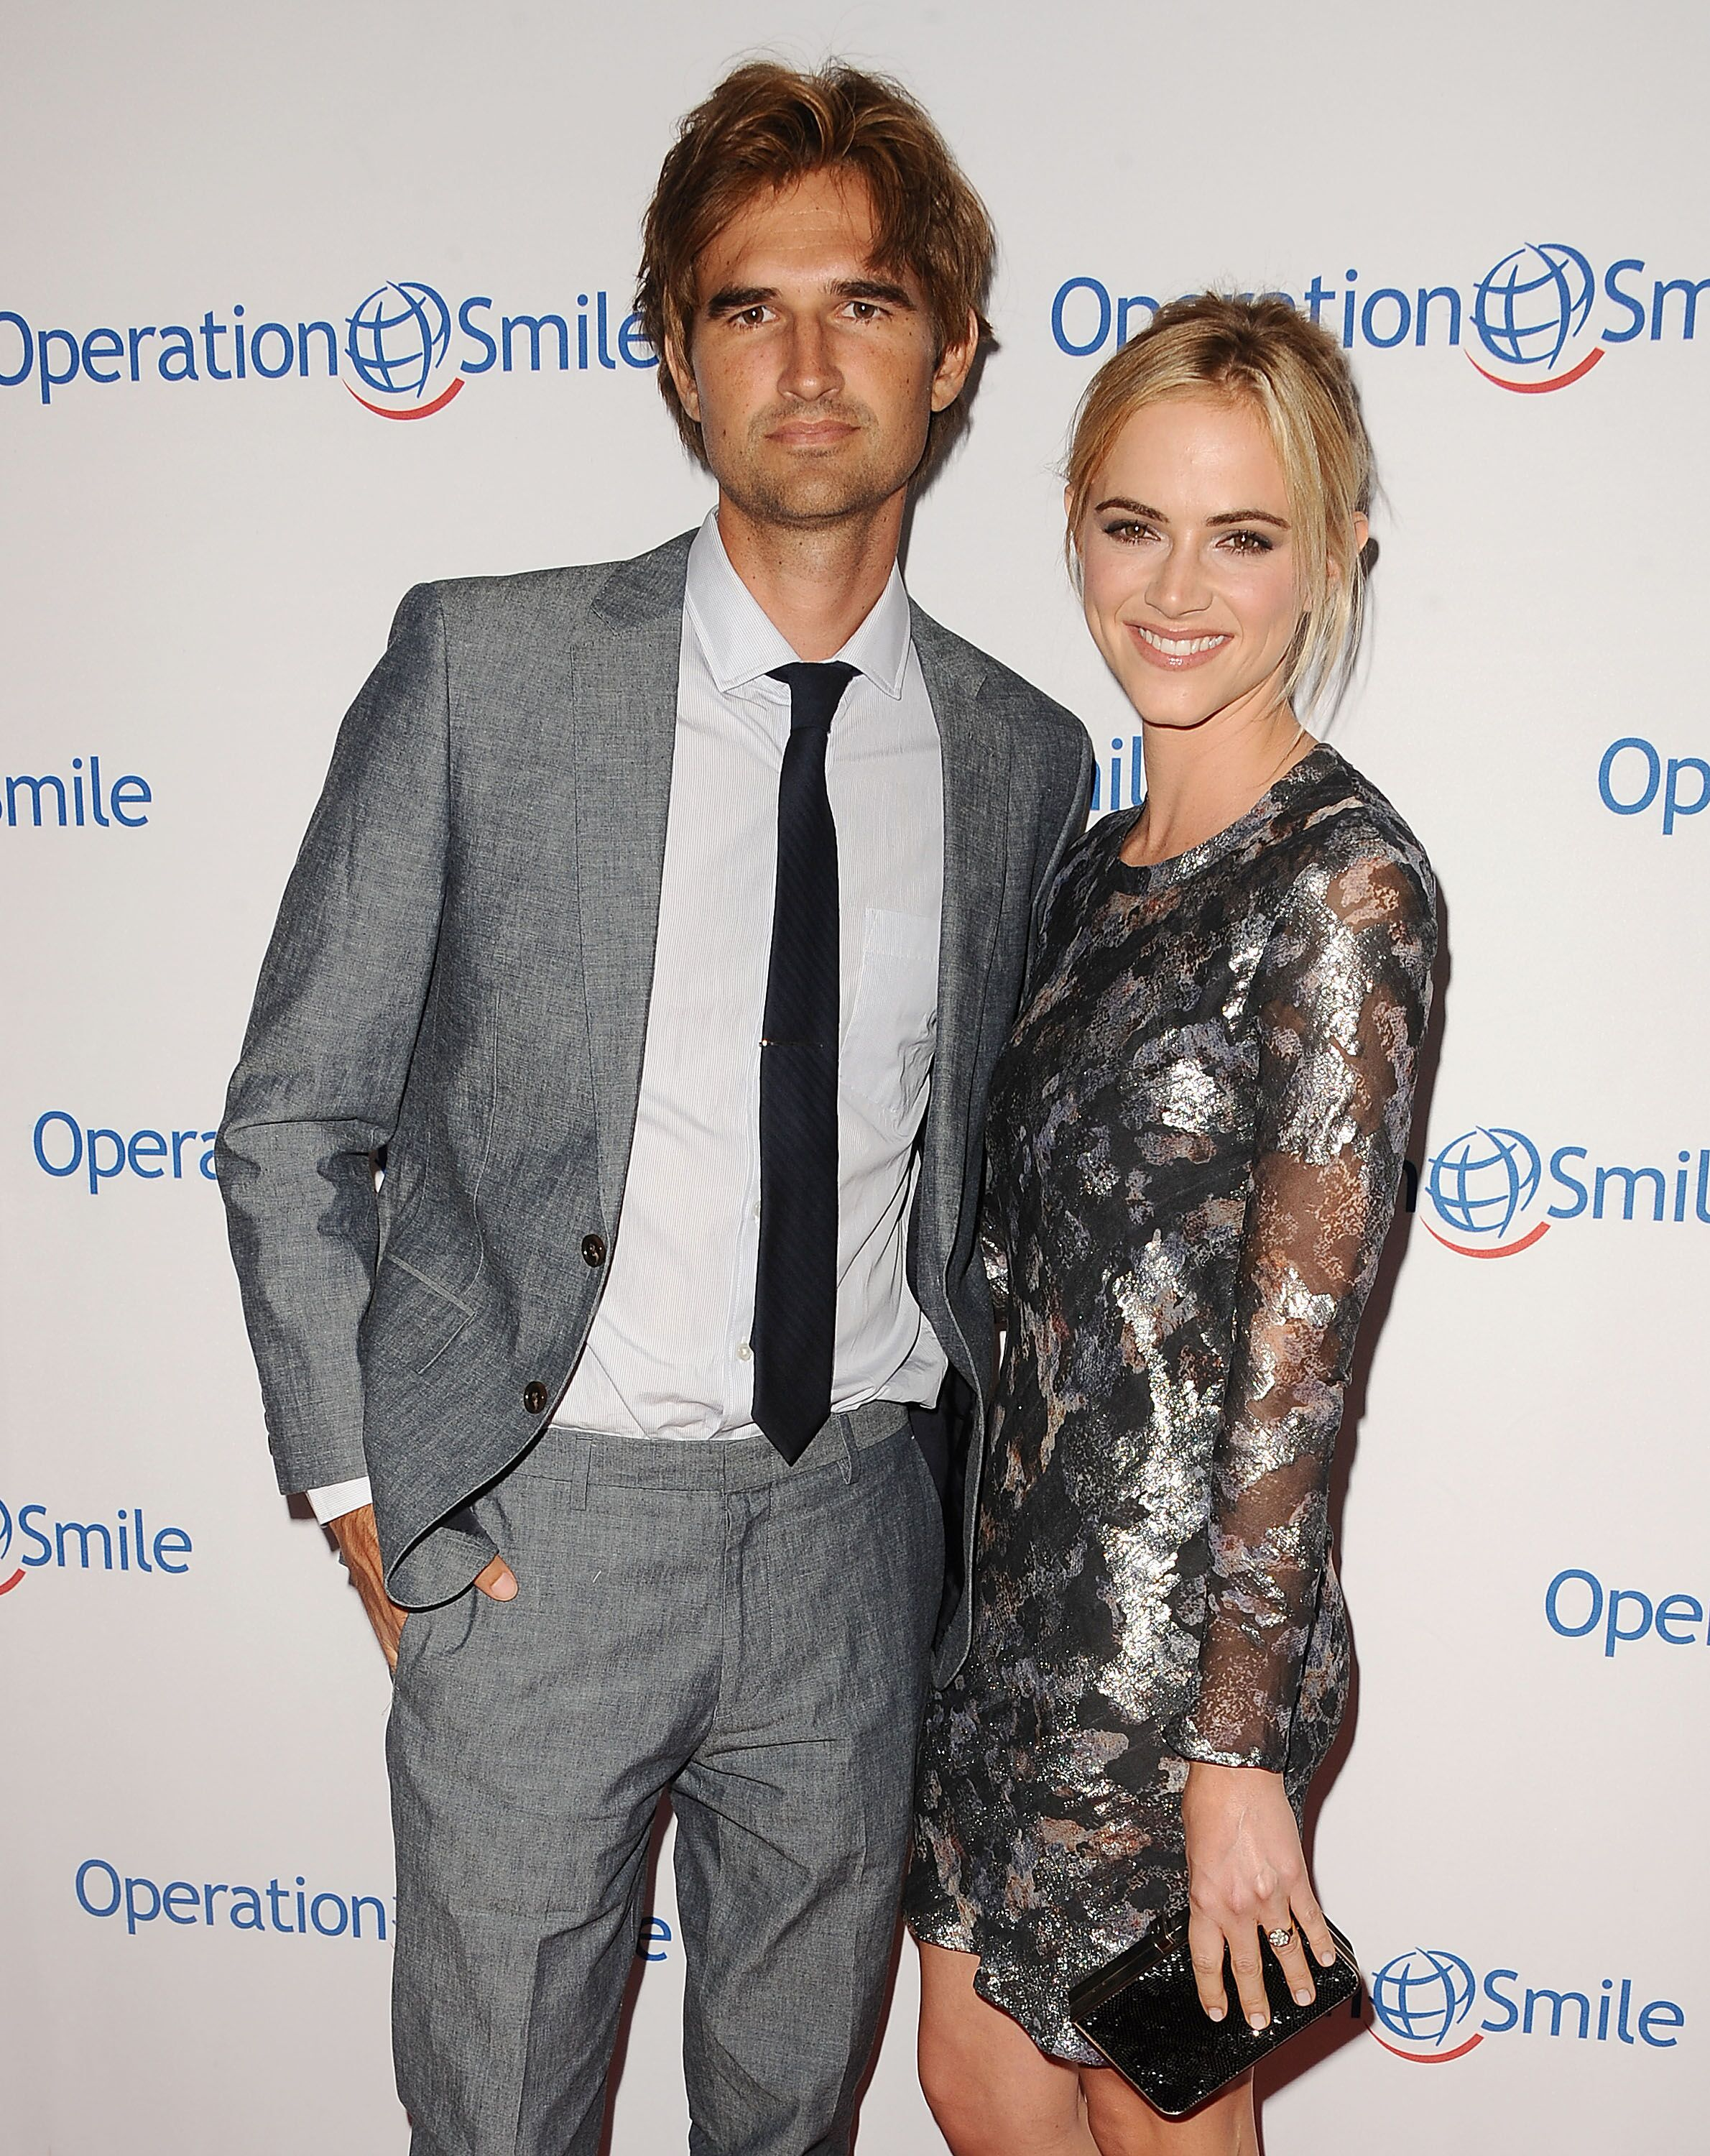 Emily Wickersham and Blake Hanley attend the 2014 Operation Smile gala at the Beverly Wilshire Four Seasons Hotel on September 19, 2014 in Beverly Hills, California. | Source: Getty Images